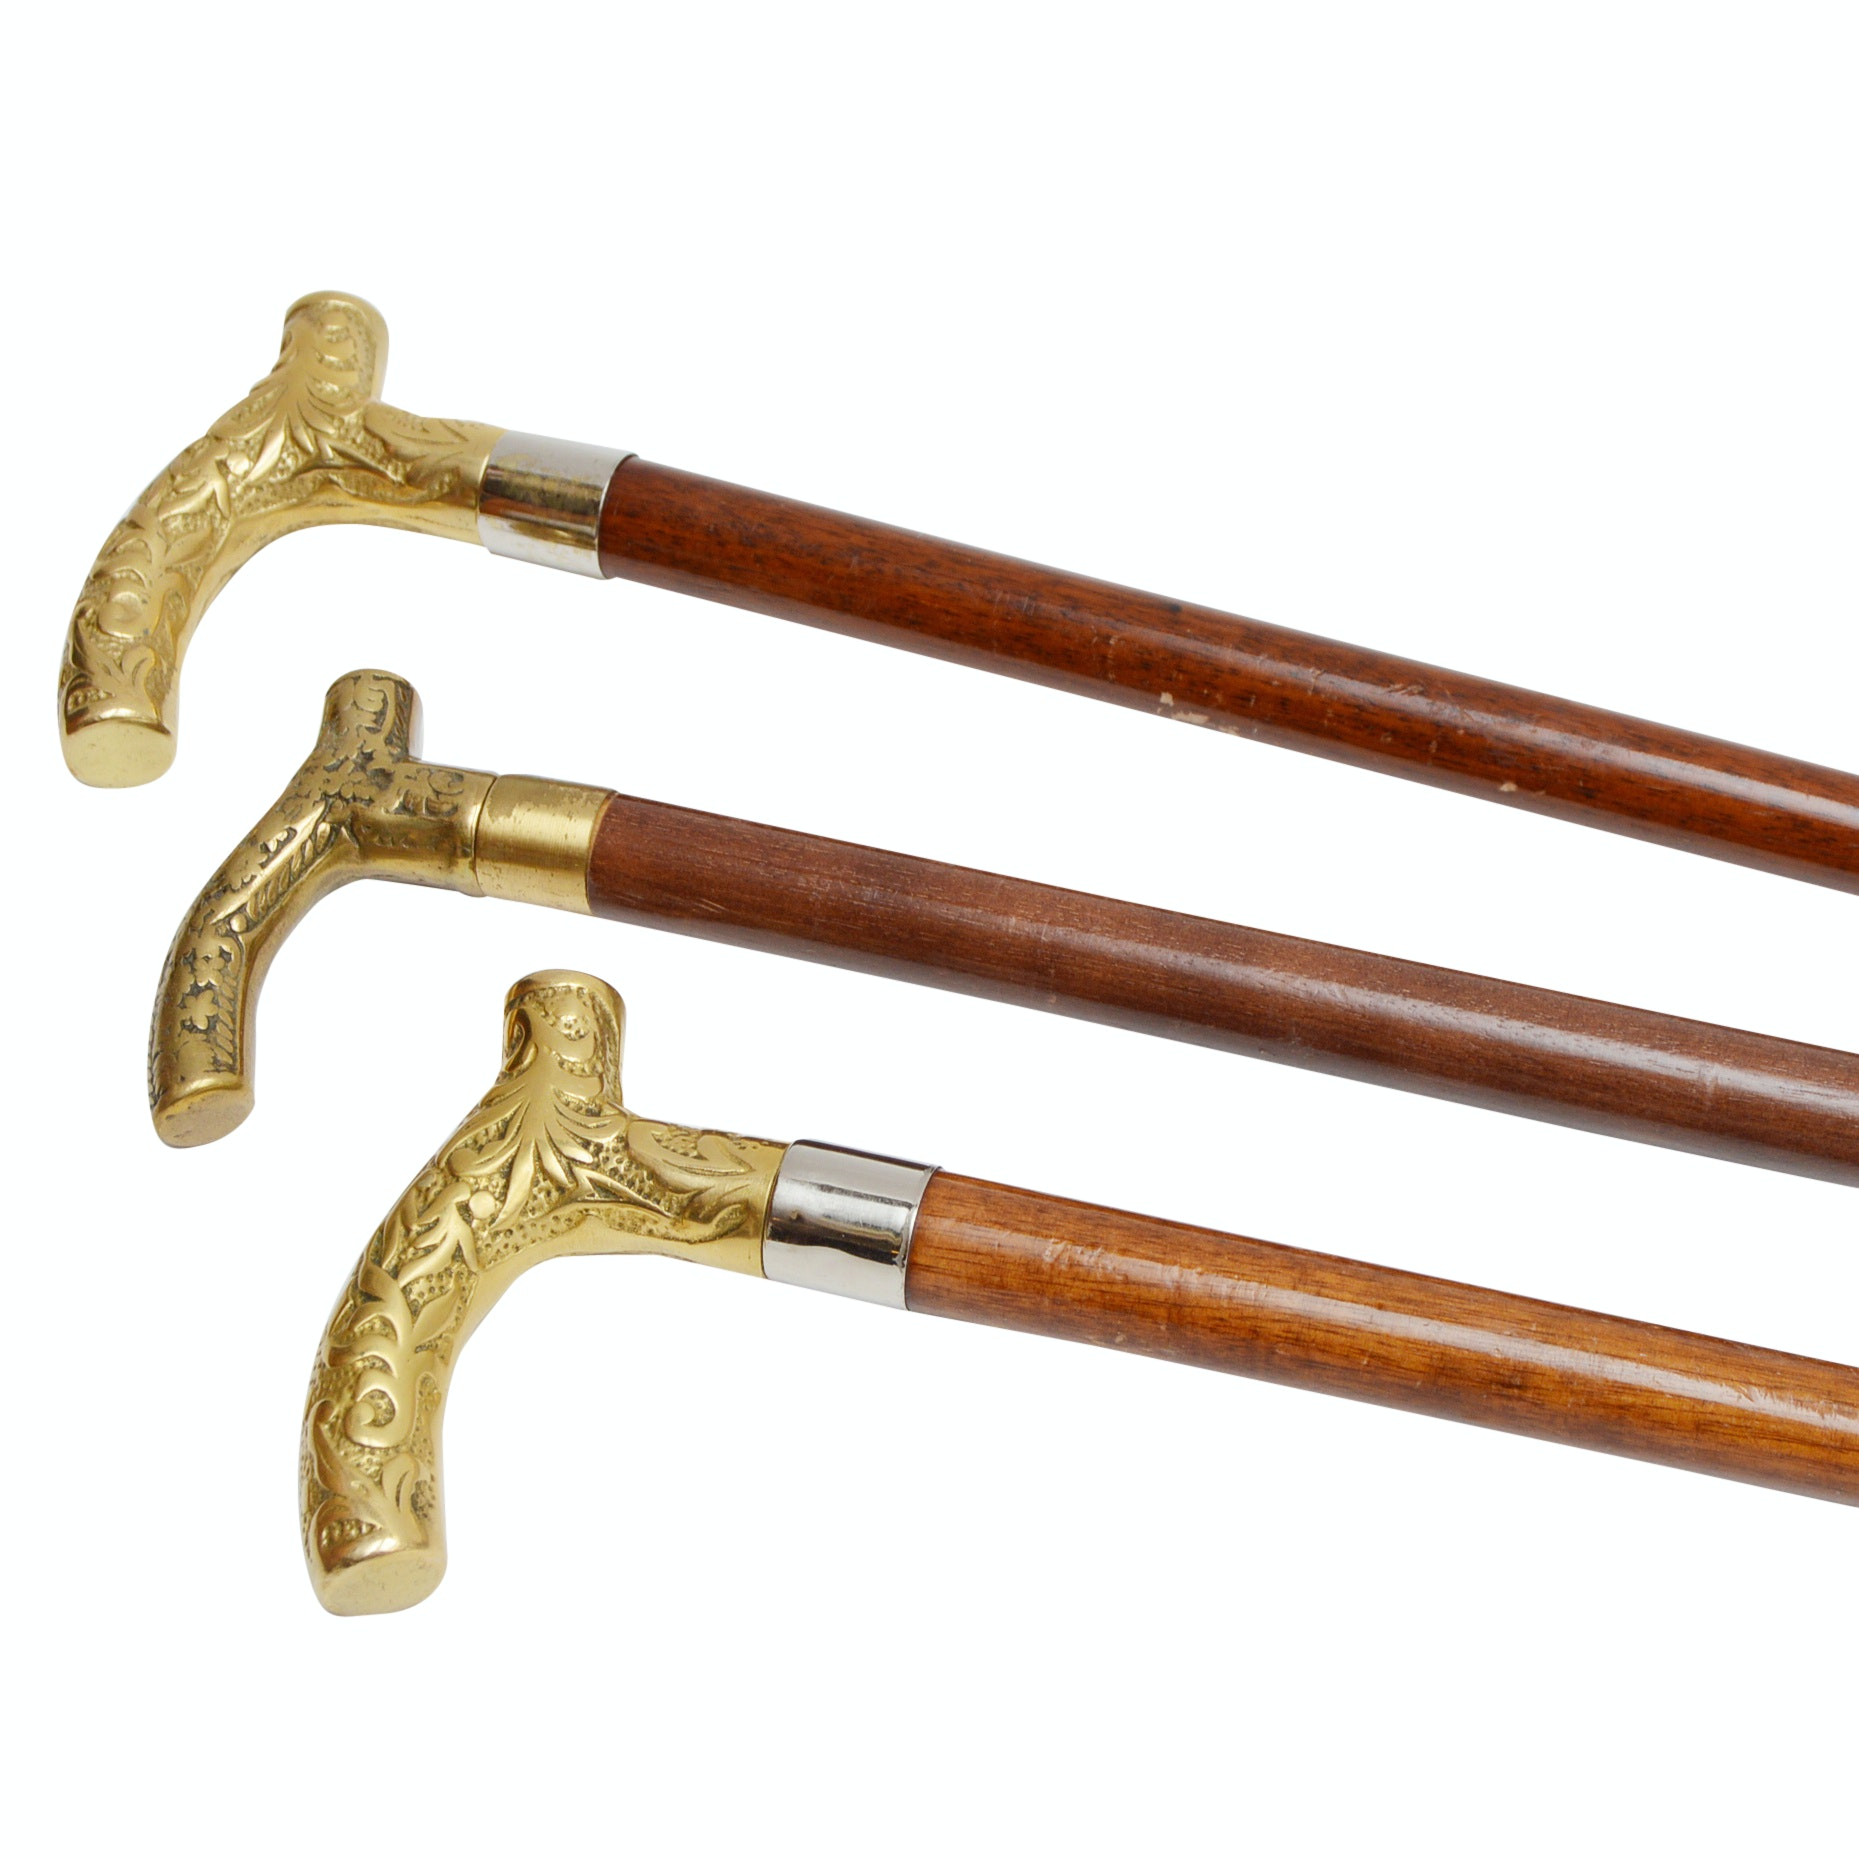 Three Vintage Wood and Brass Canes